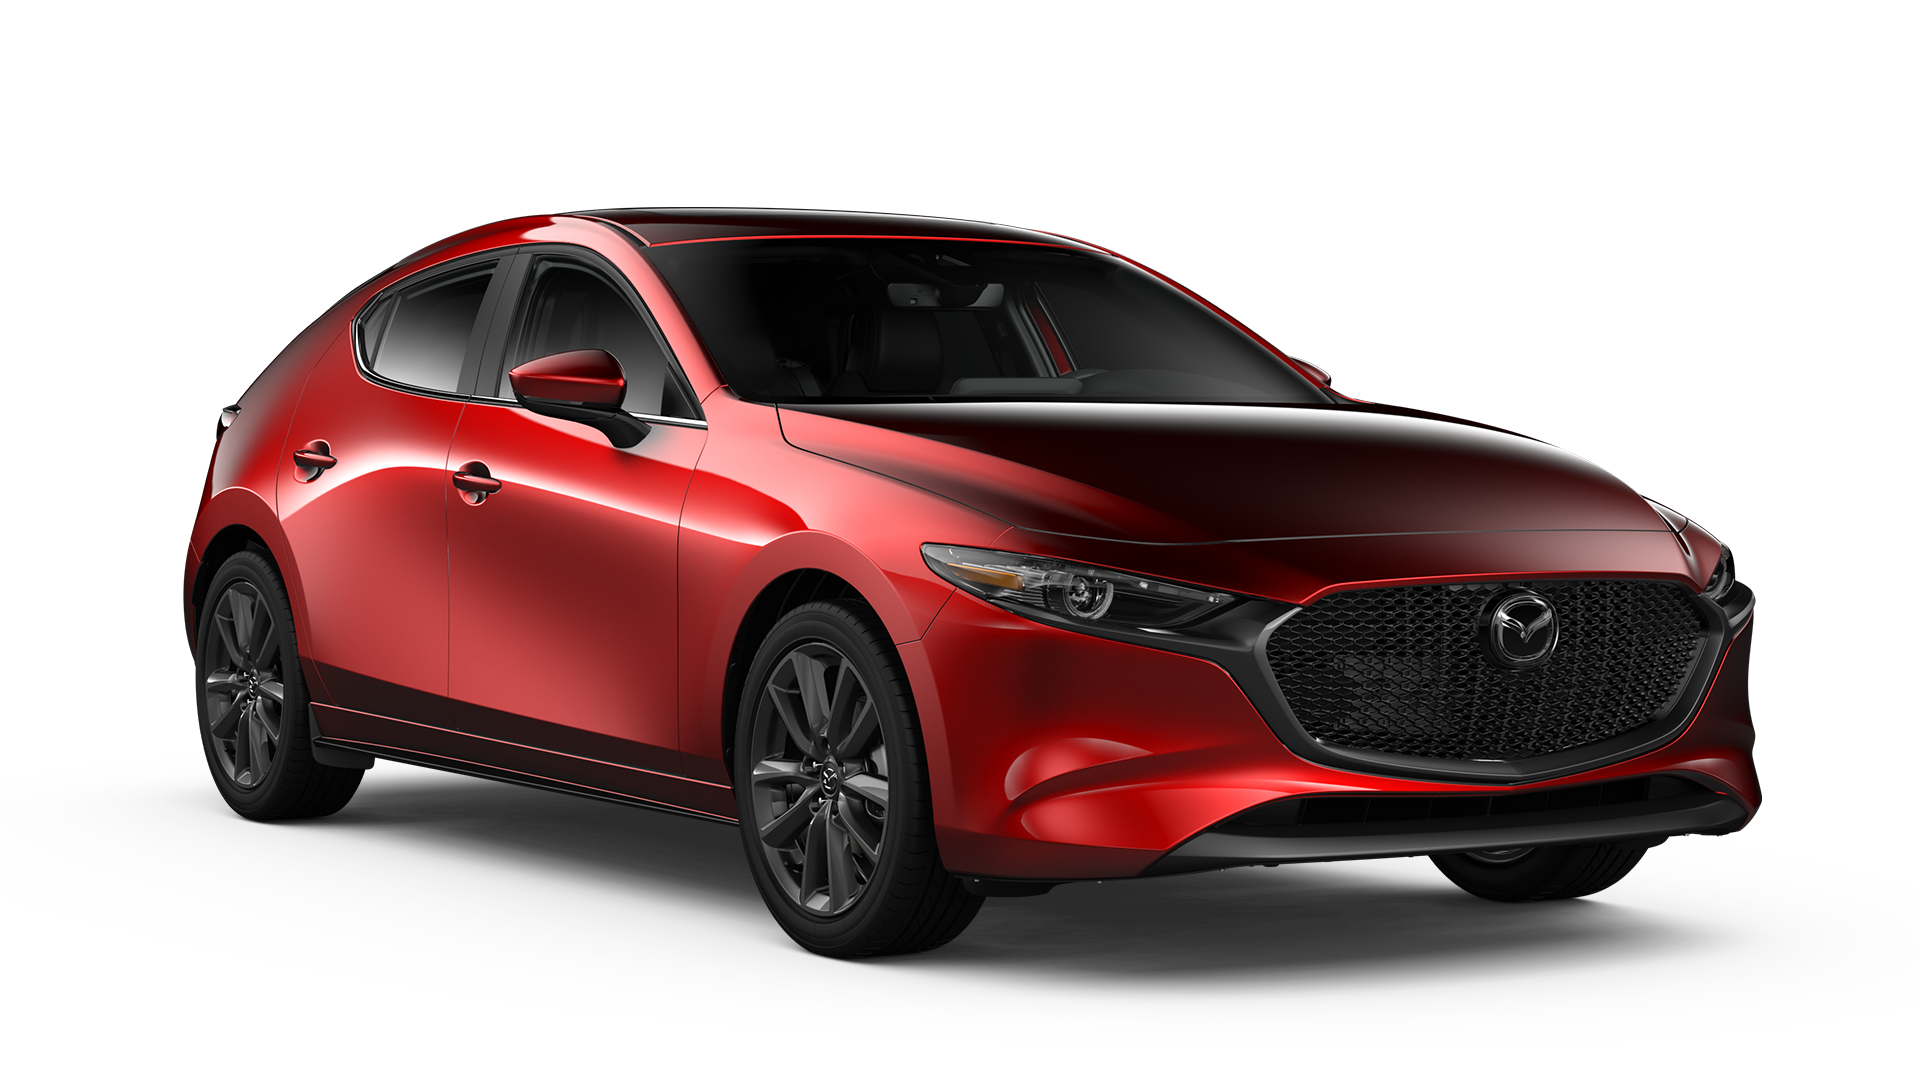 37 Gallery of Mazda 3 2019 Gt Performance and New Engine with Mazda 3 2019 Gt